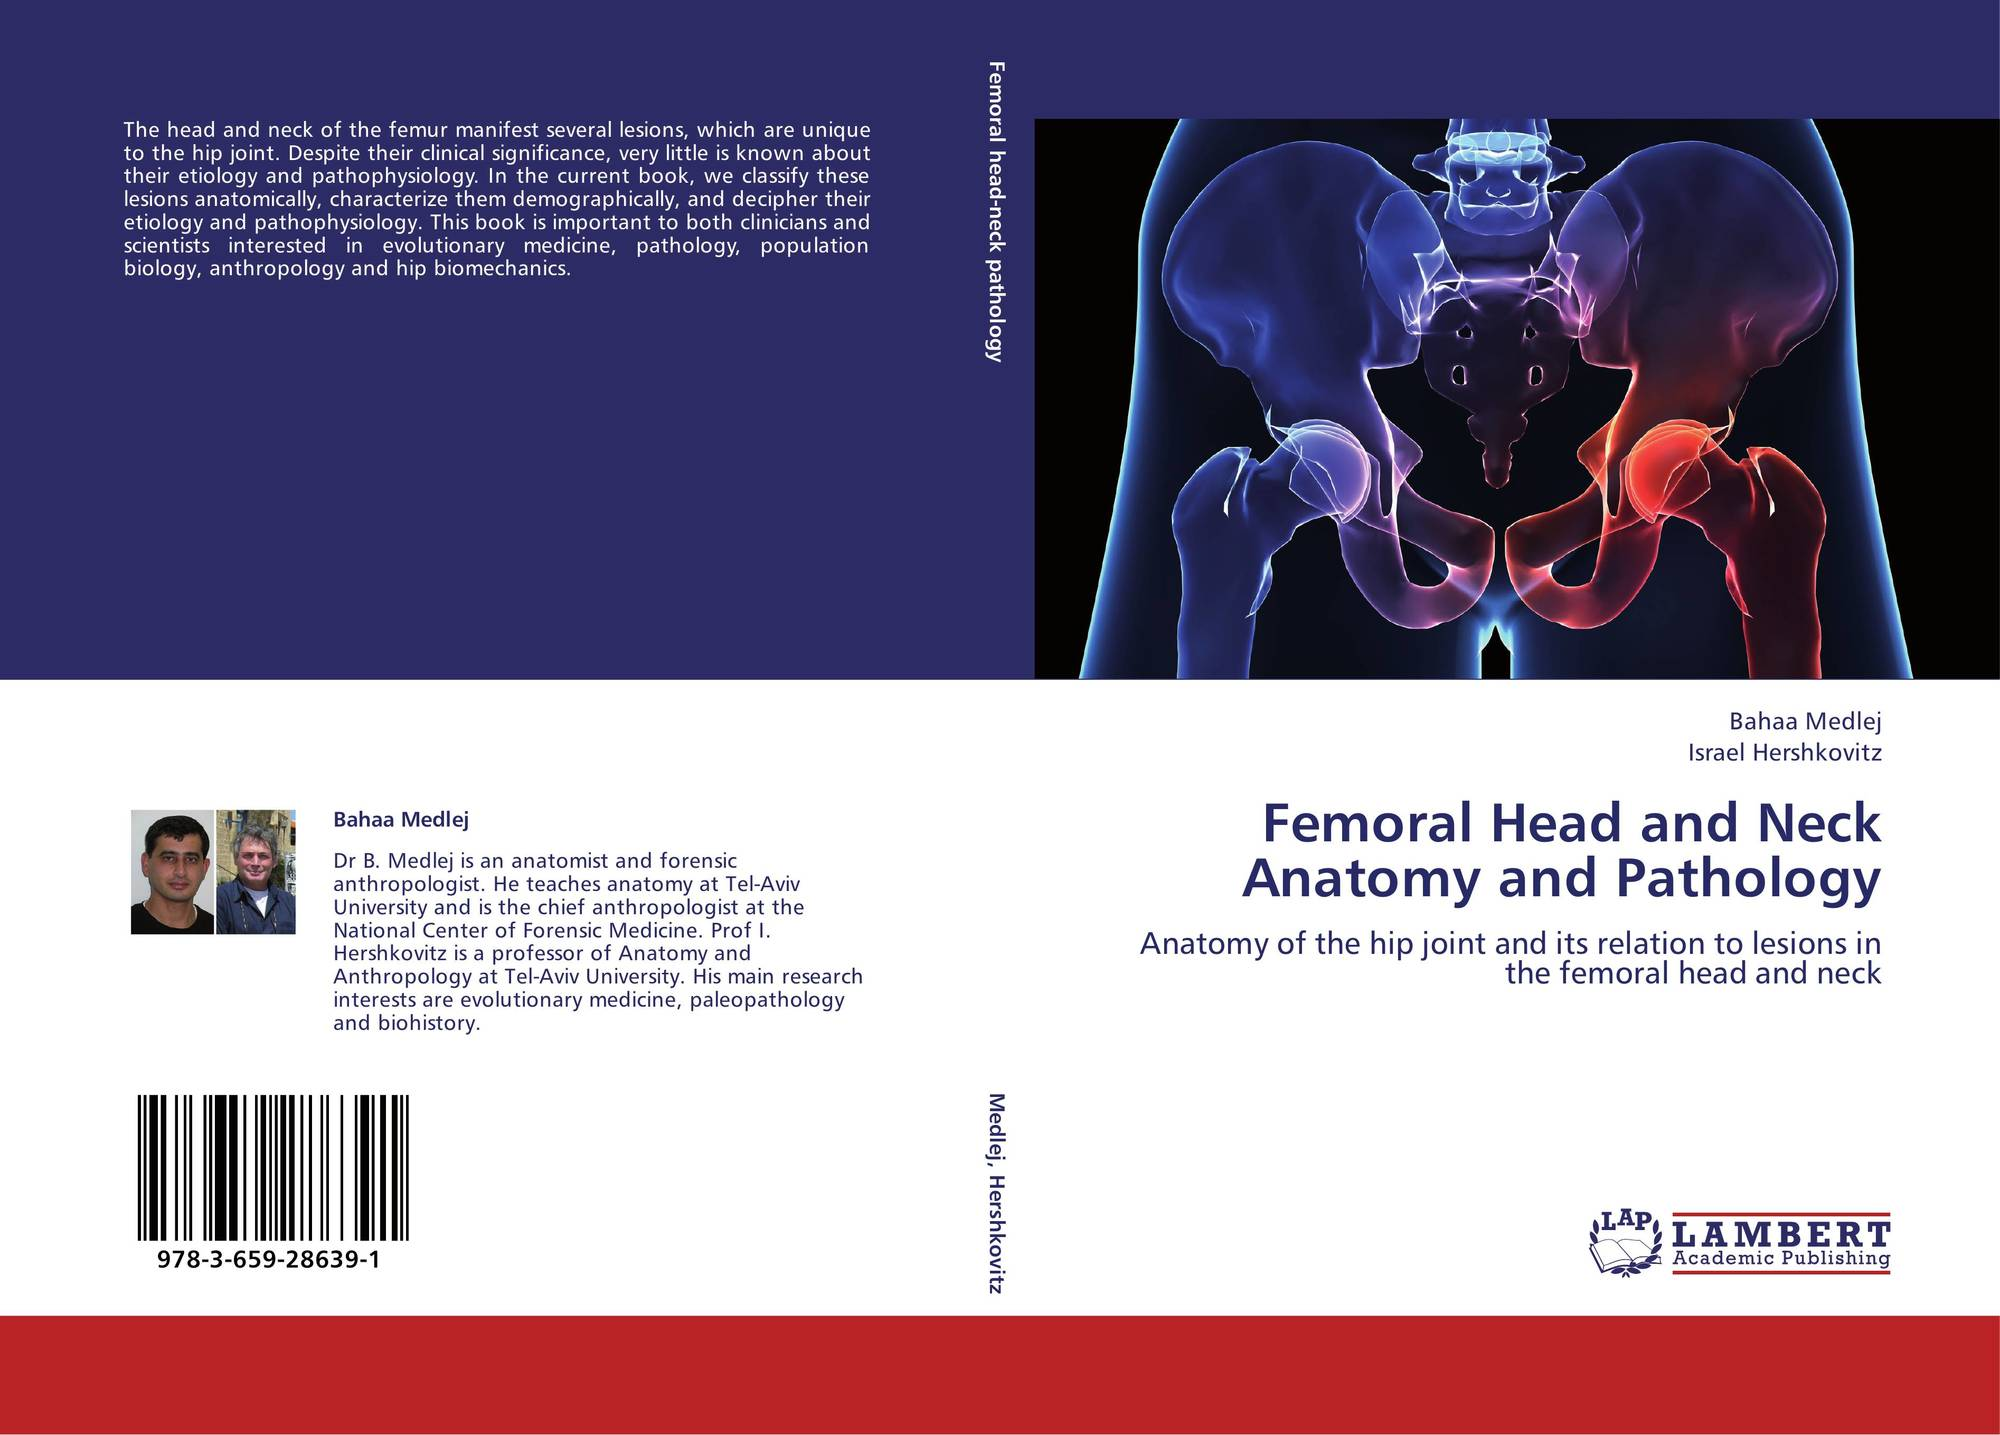 Femoral Head and Neck Anatomy and Pathology, 978-3-659-28639-1 ...